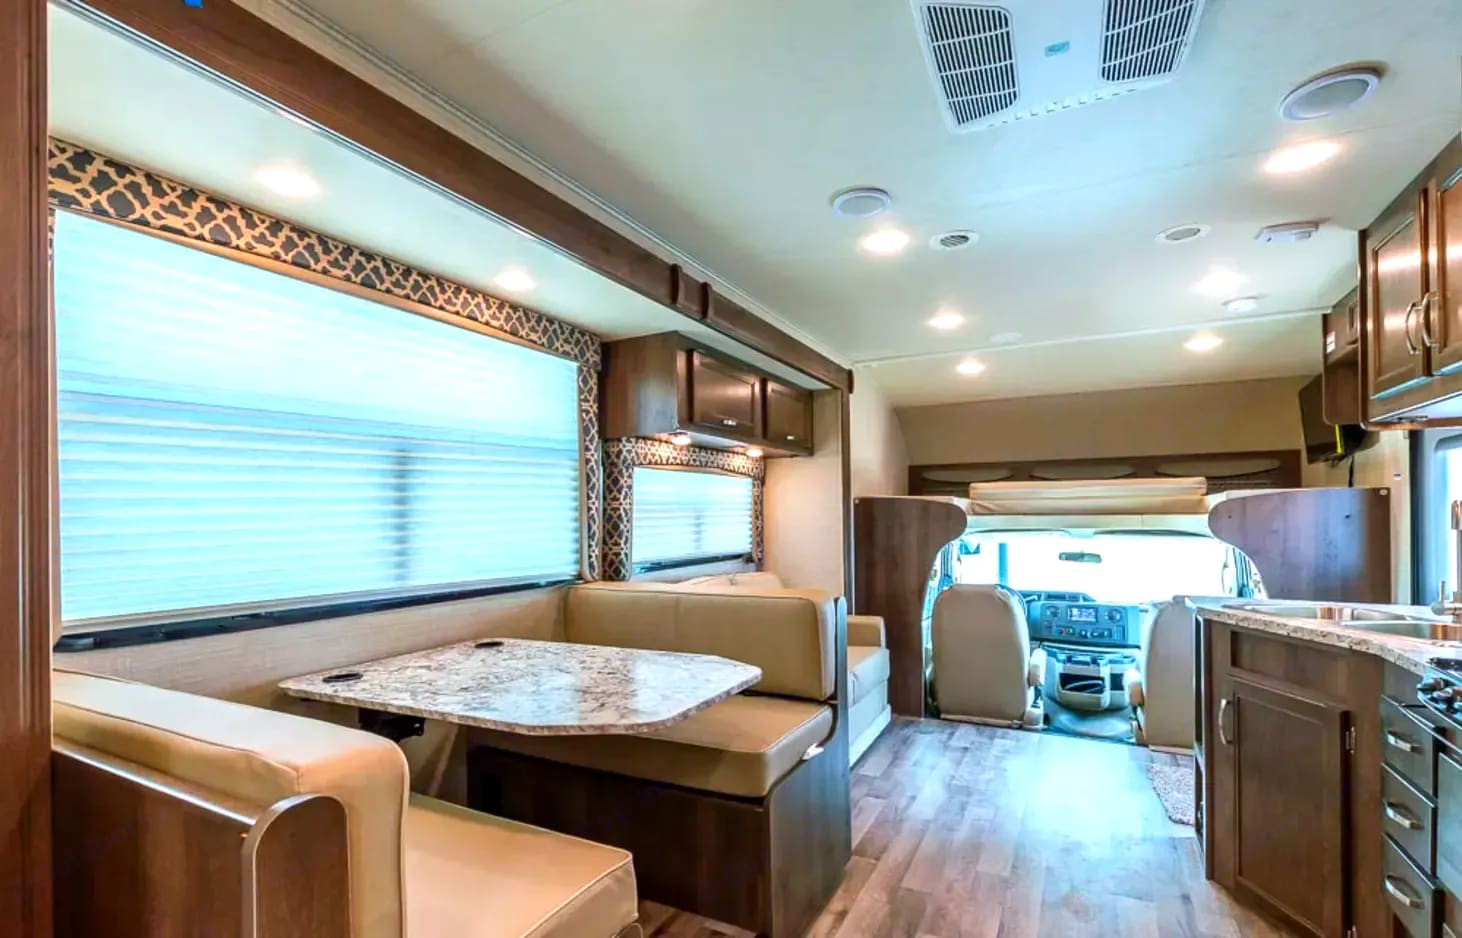 large living space with extra long slide for more room. Jayco Class C Motorhome 2019